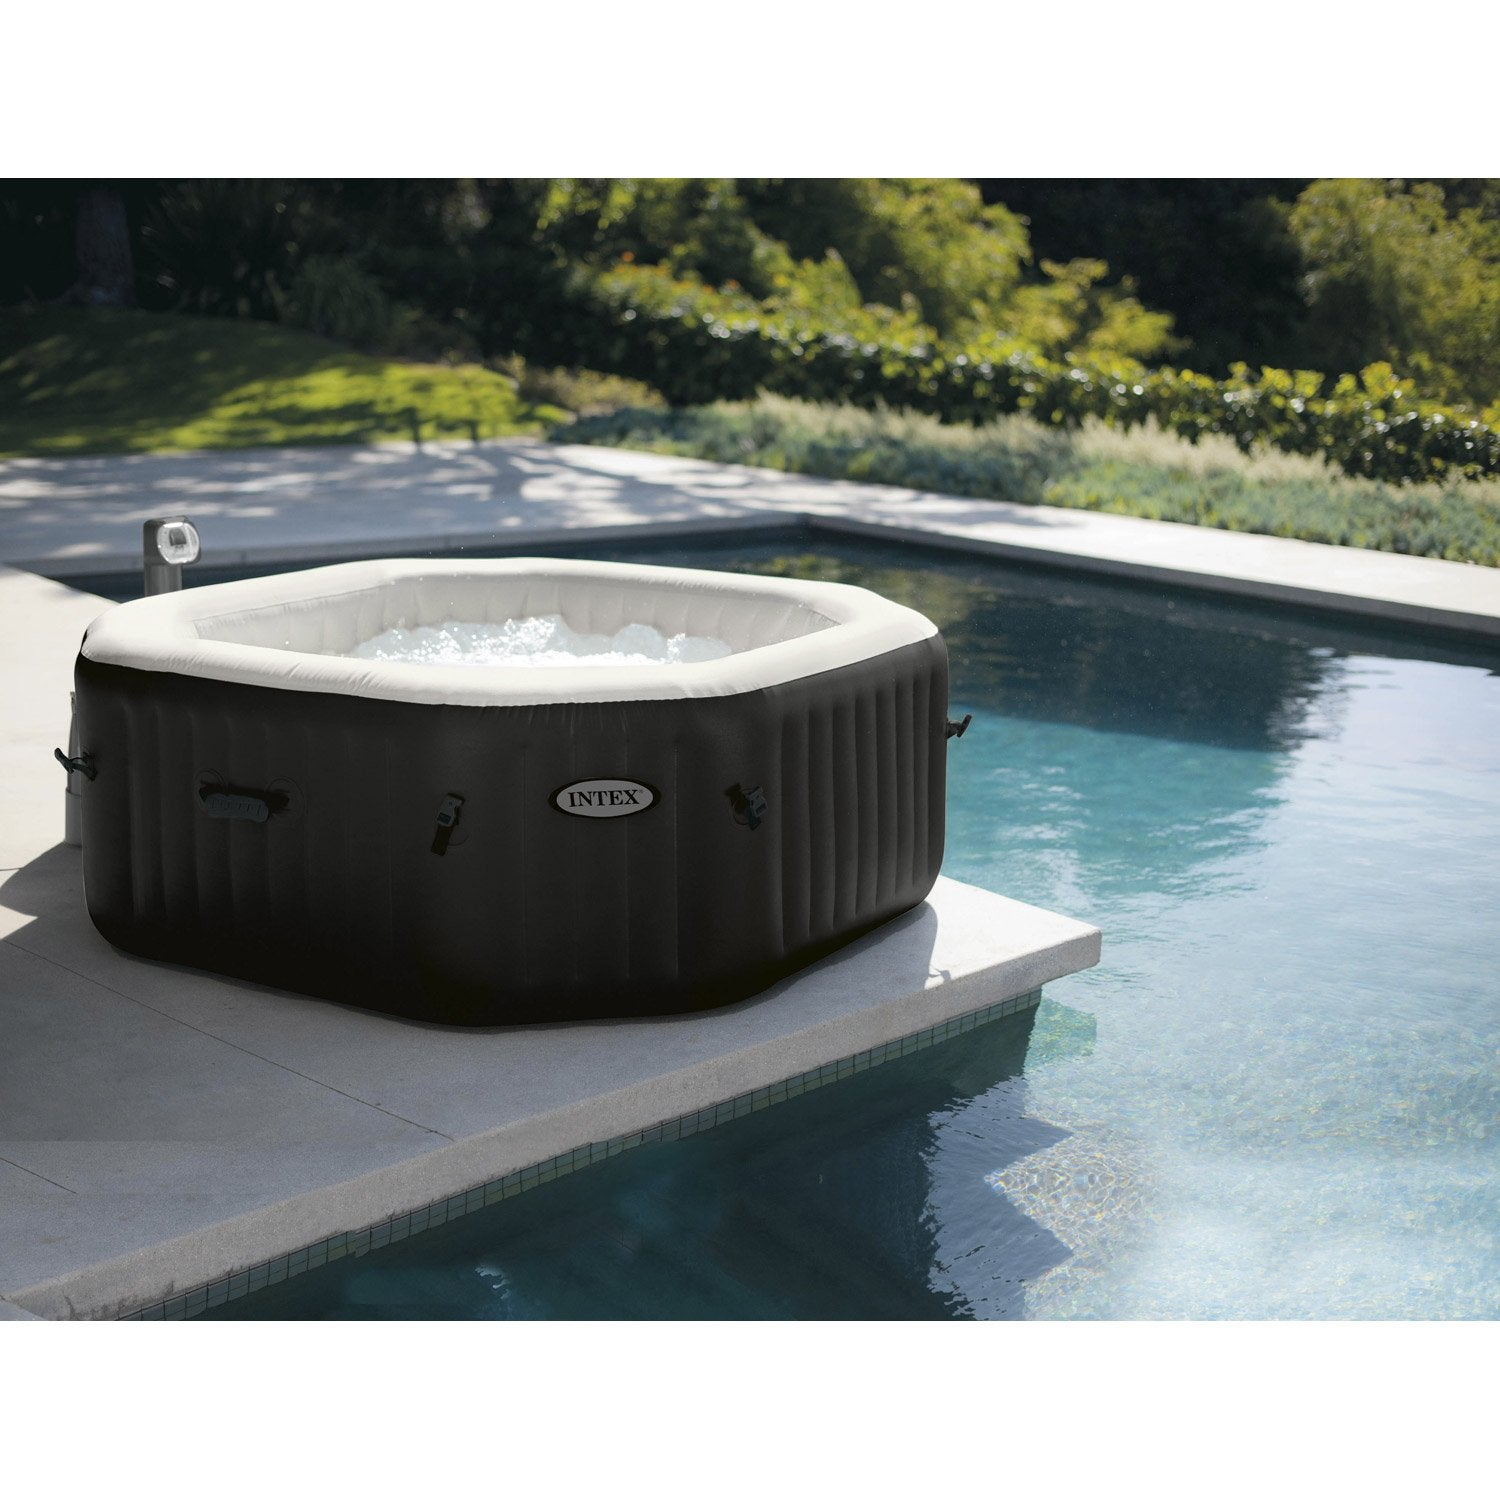 Spa gonflable intex purespa bulles octogonale 6 places - Jacuzzi exterieur gonflable ...